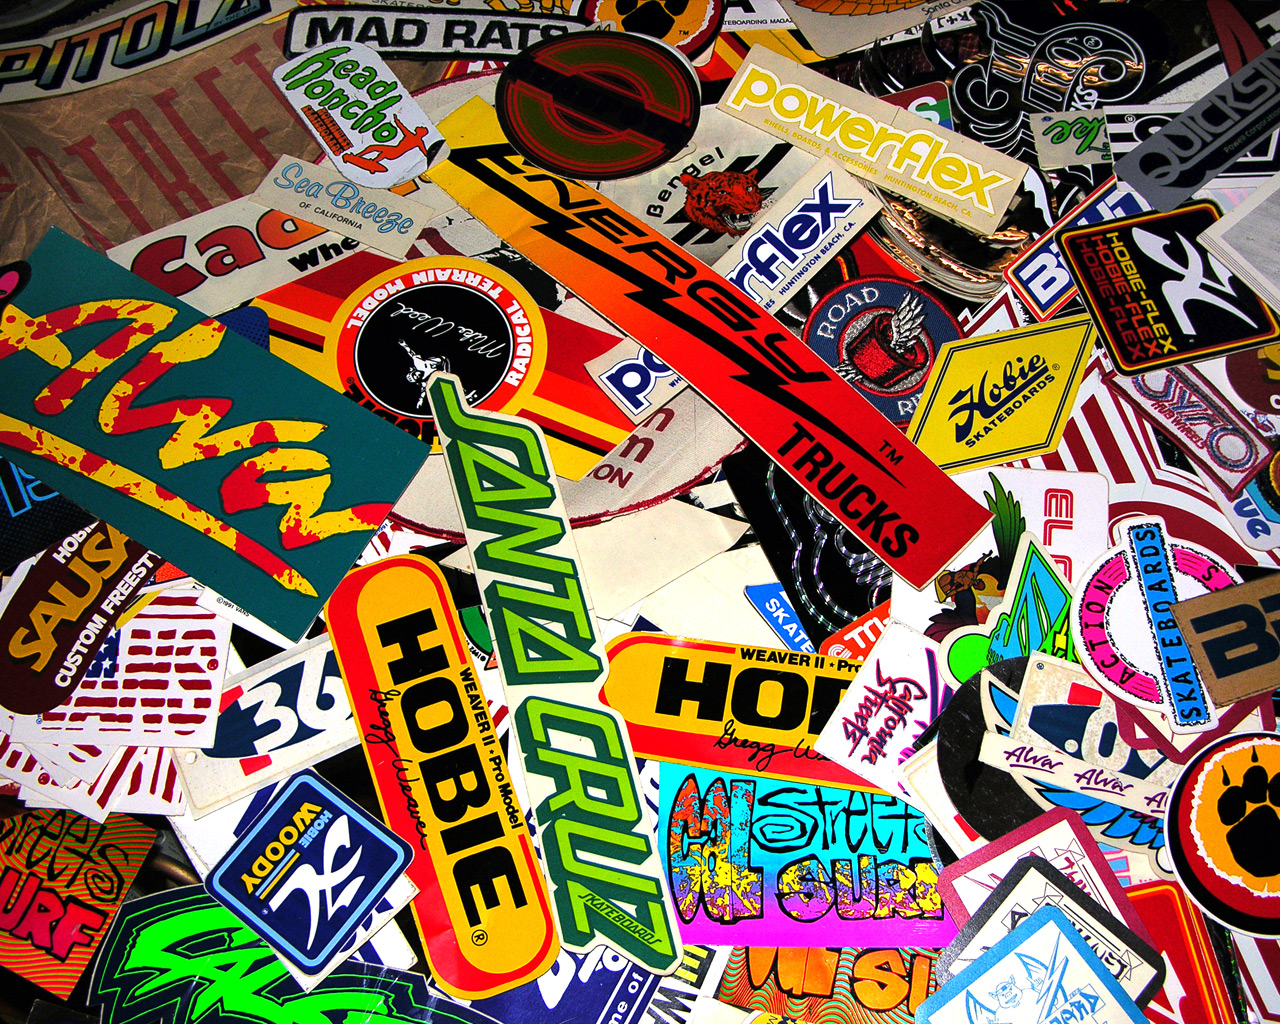 Over 2000 5000 pages of retro skateboard artwork, advertisements,